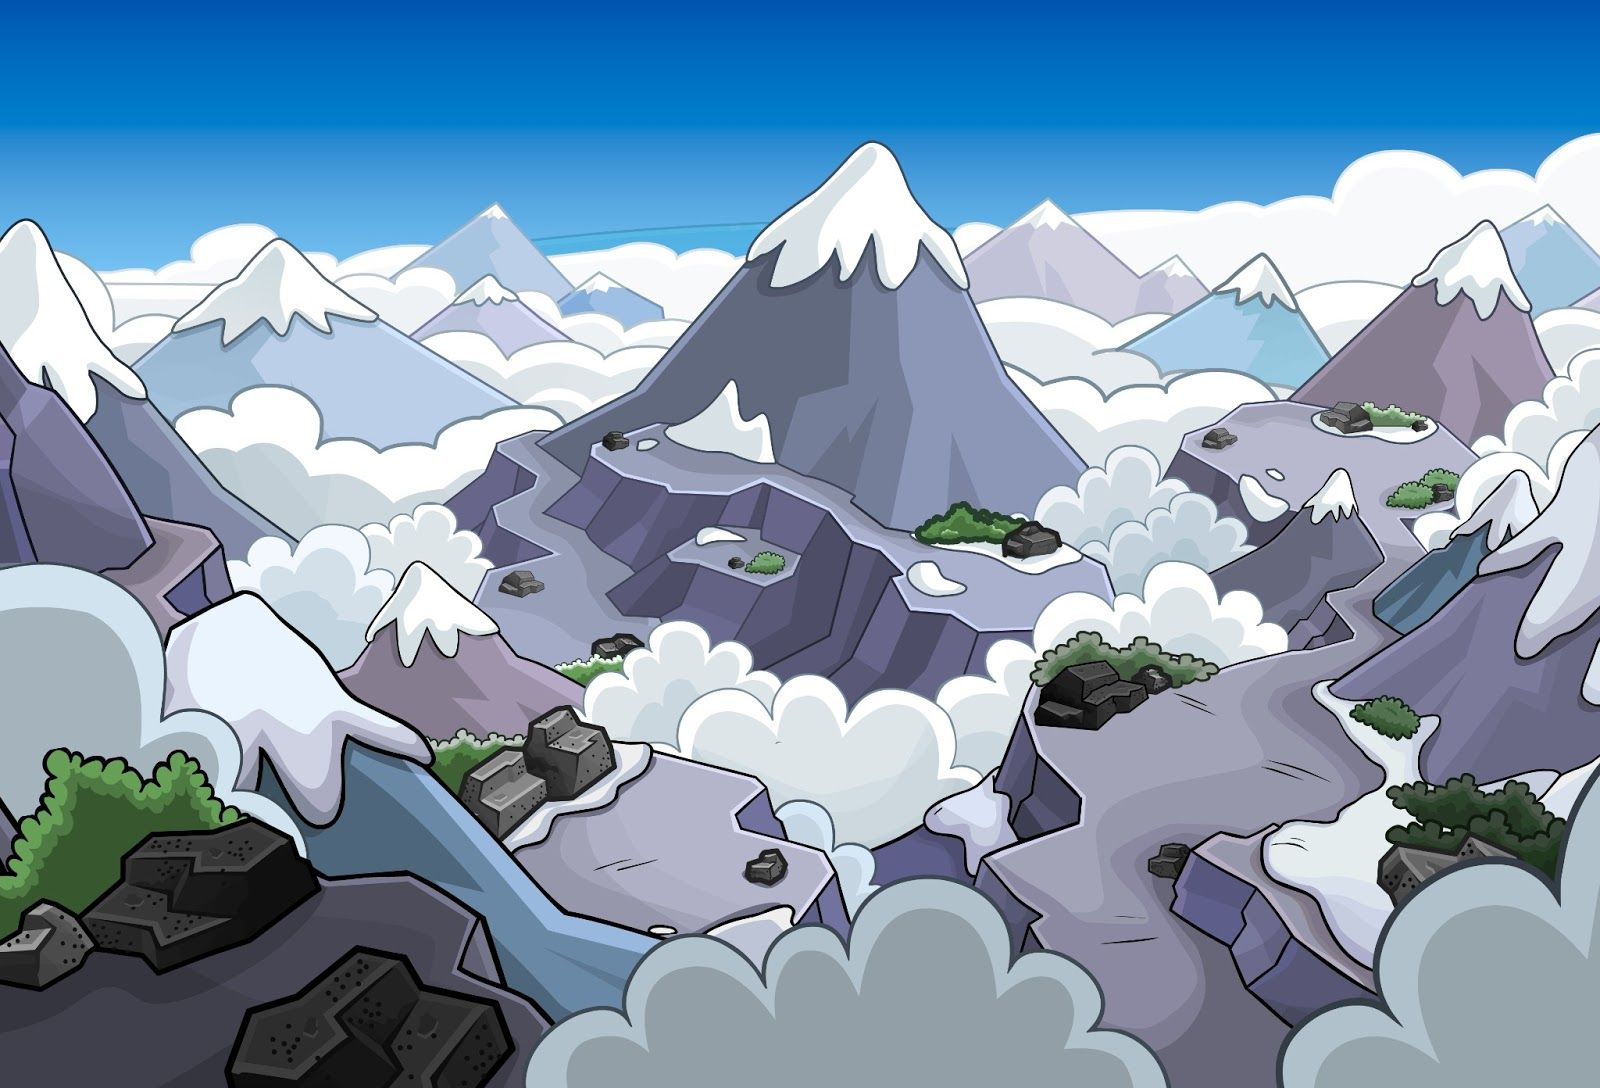 club penguin backgrounds - Google Search | Club Penguin Inspirations ...